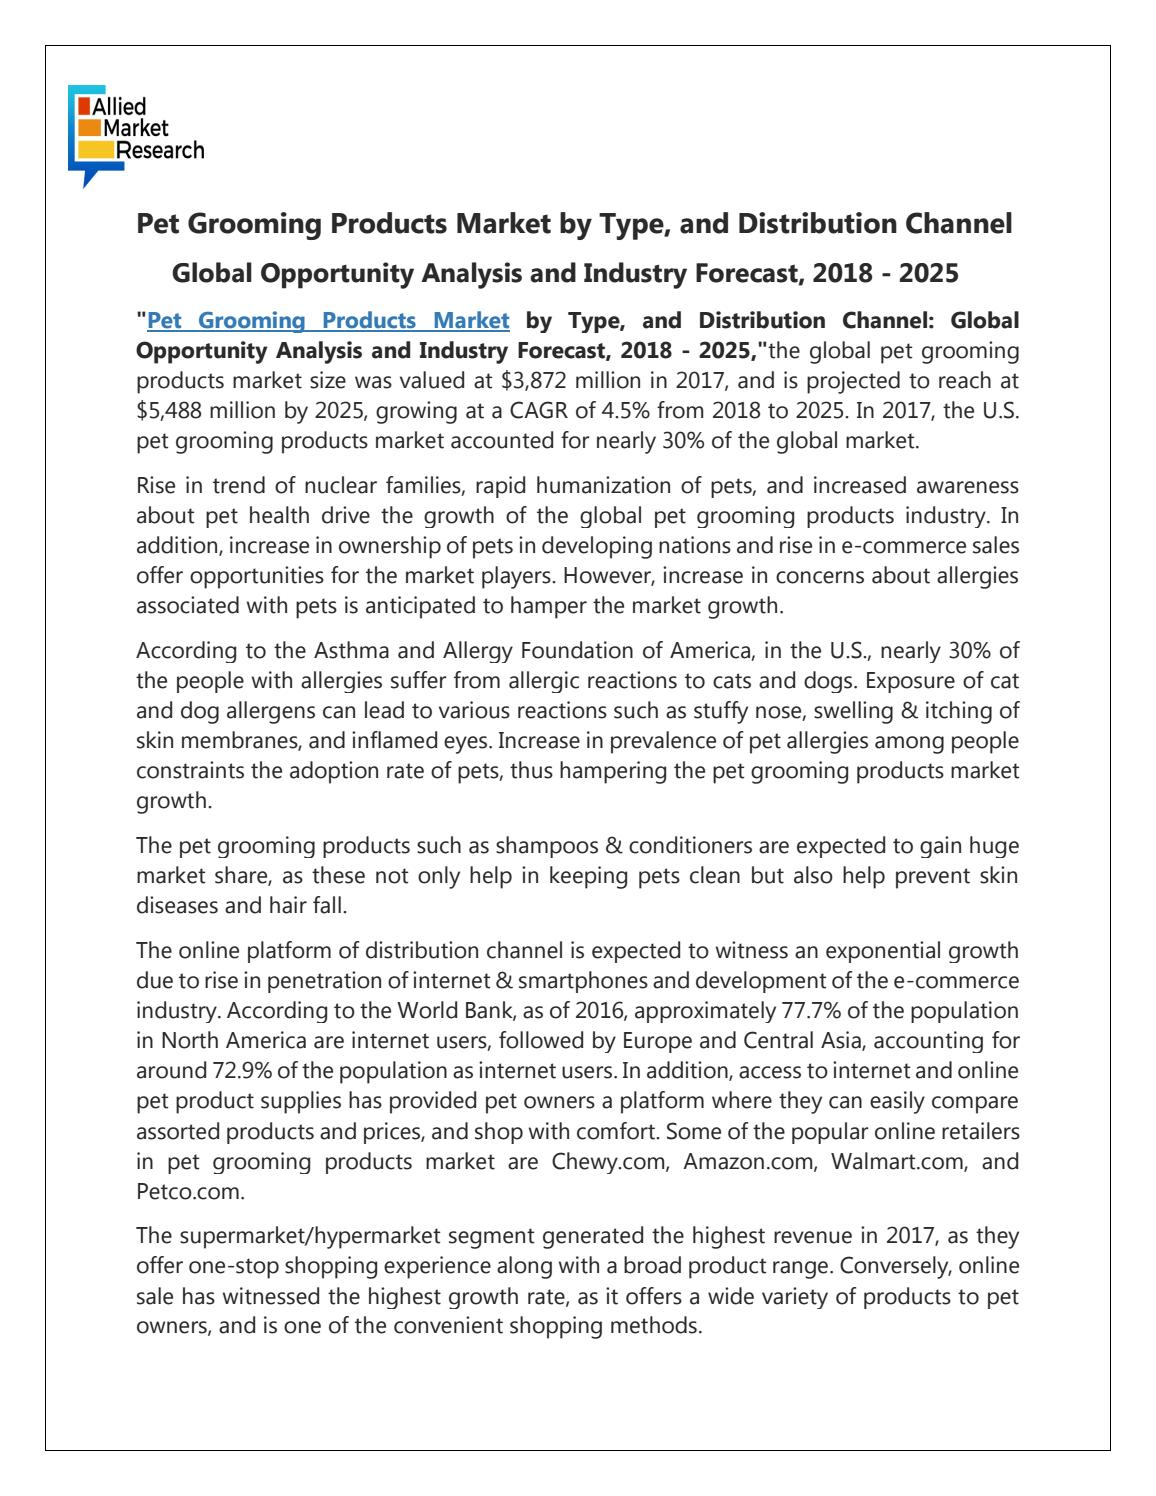 Global Pet Grooming Products Market Expected to Reach $5,488 Million